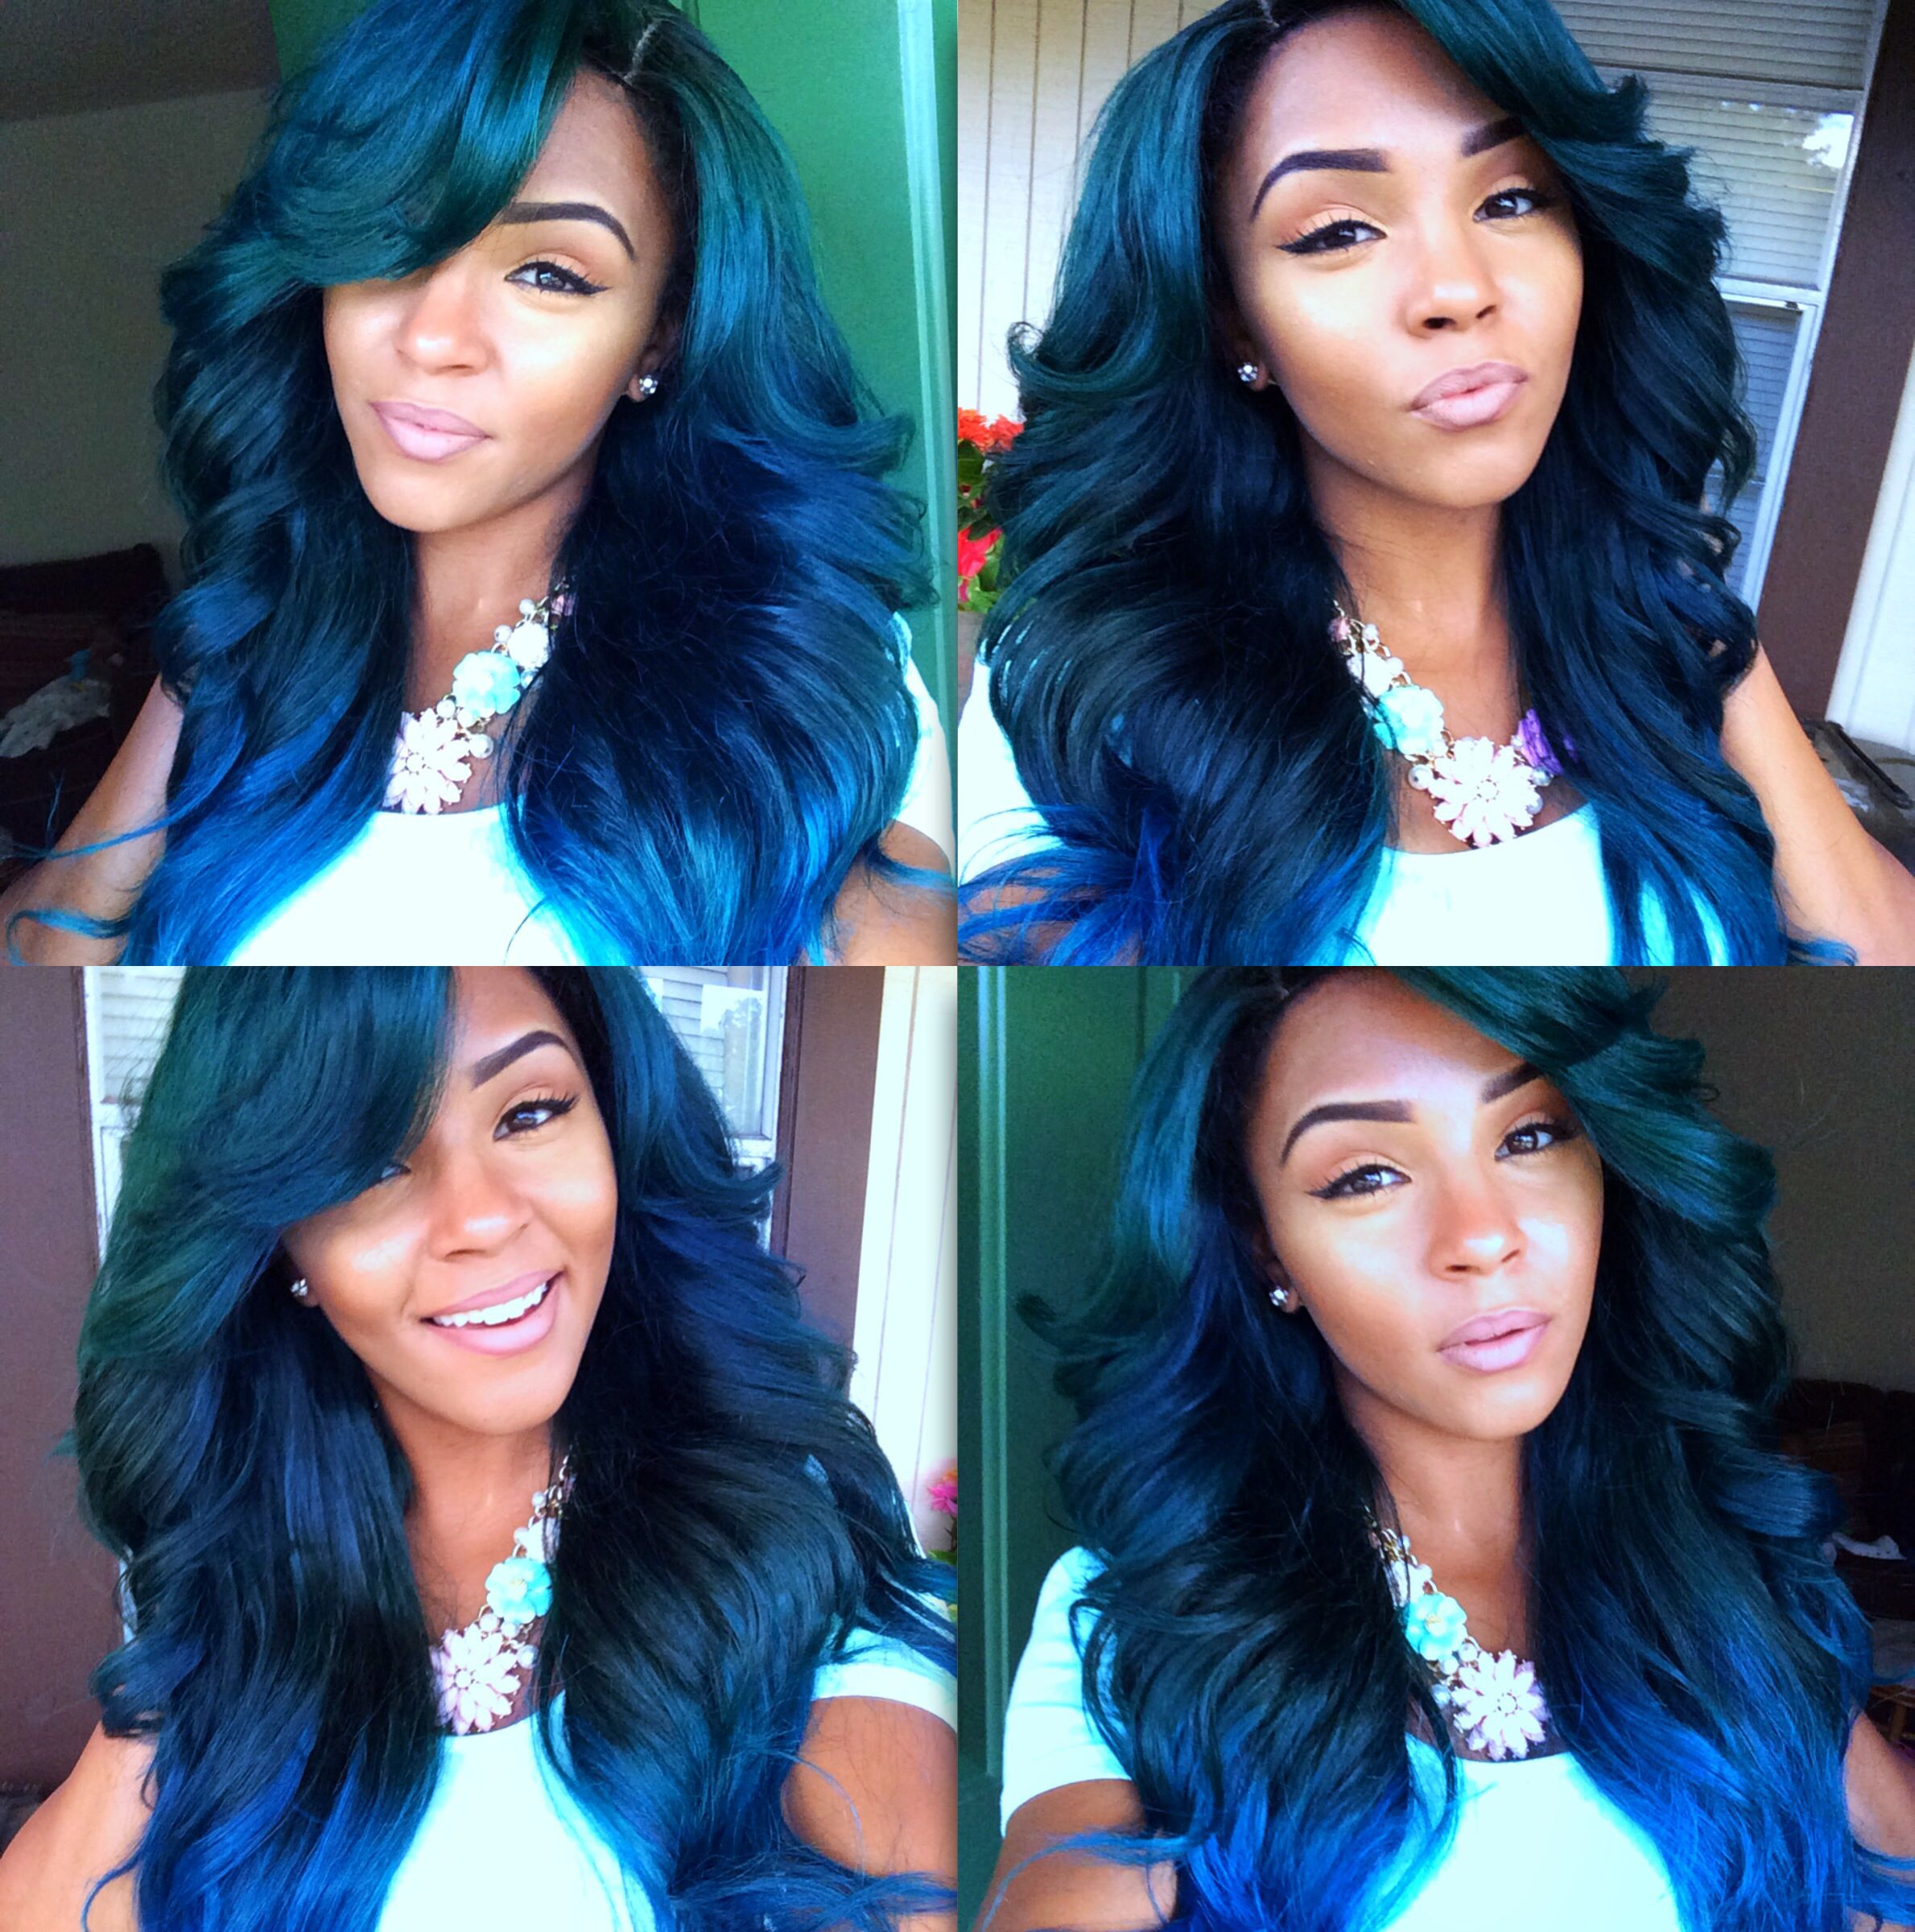 Kind Of Miss My Blue And Green It S So Cute Hair Styles Hair